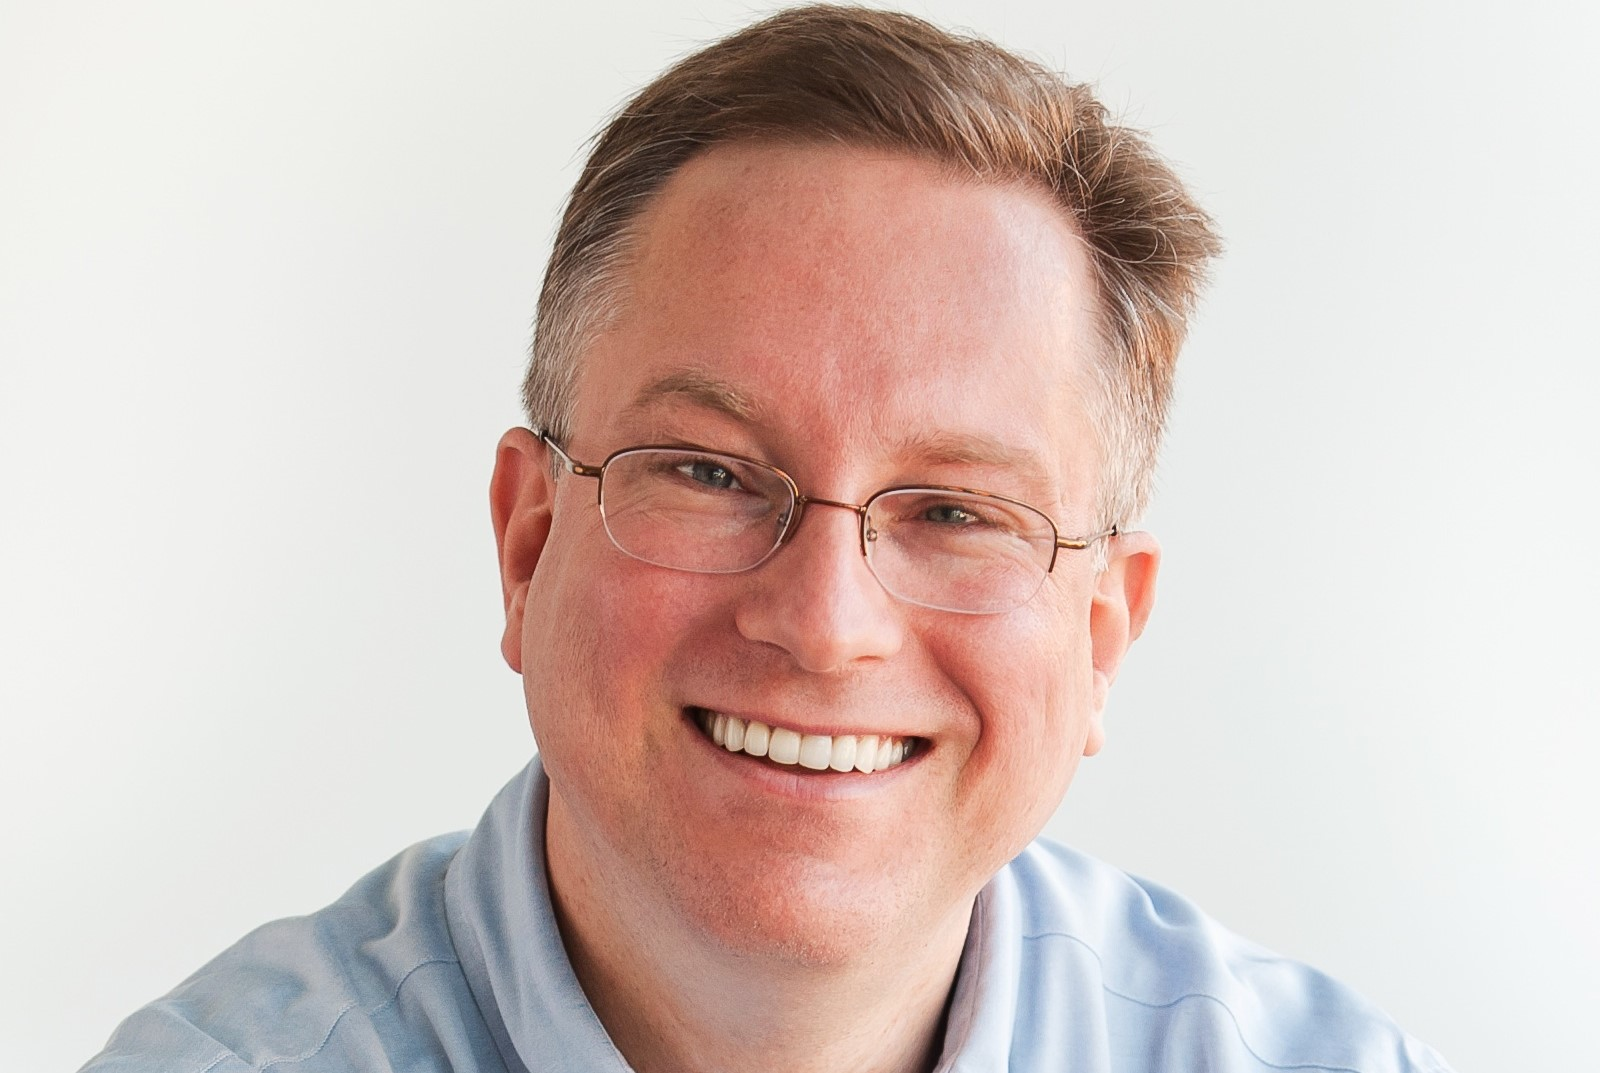 Scott Brinker smiling Photo